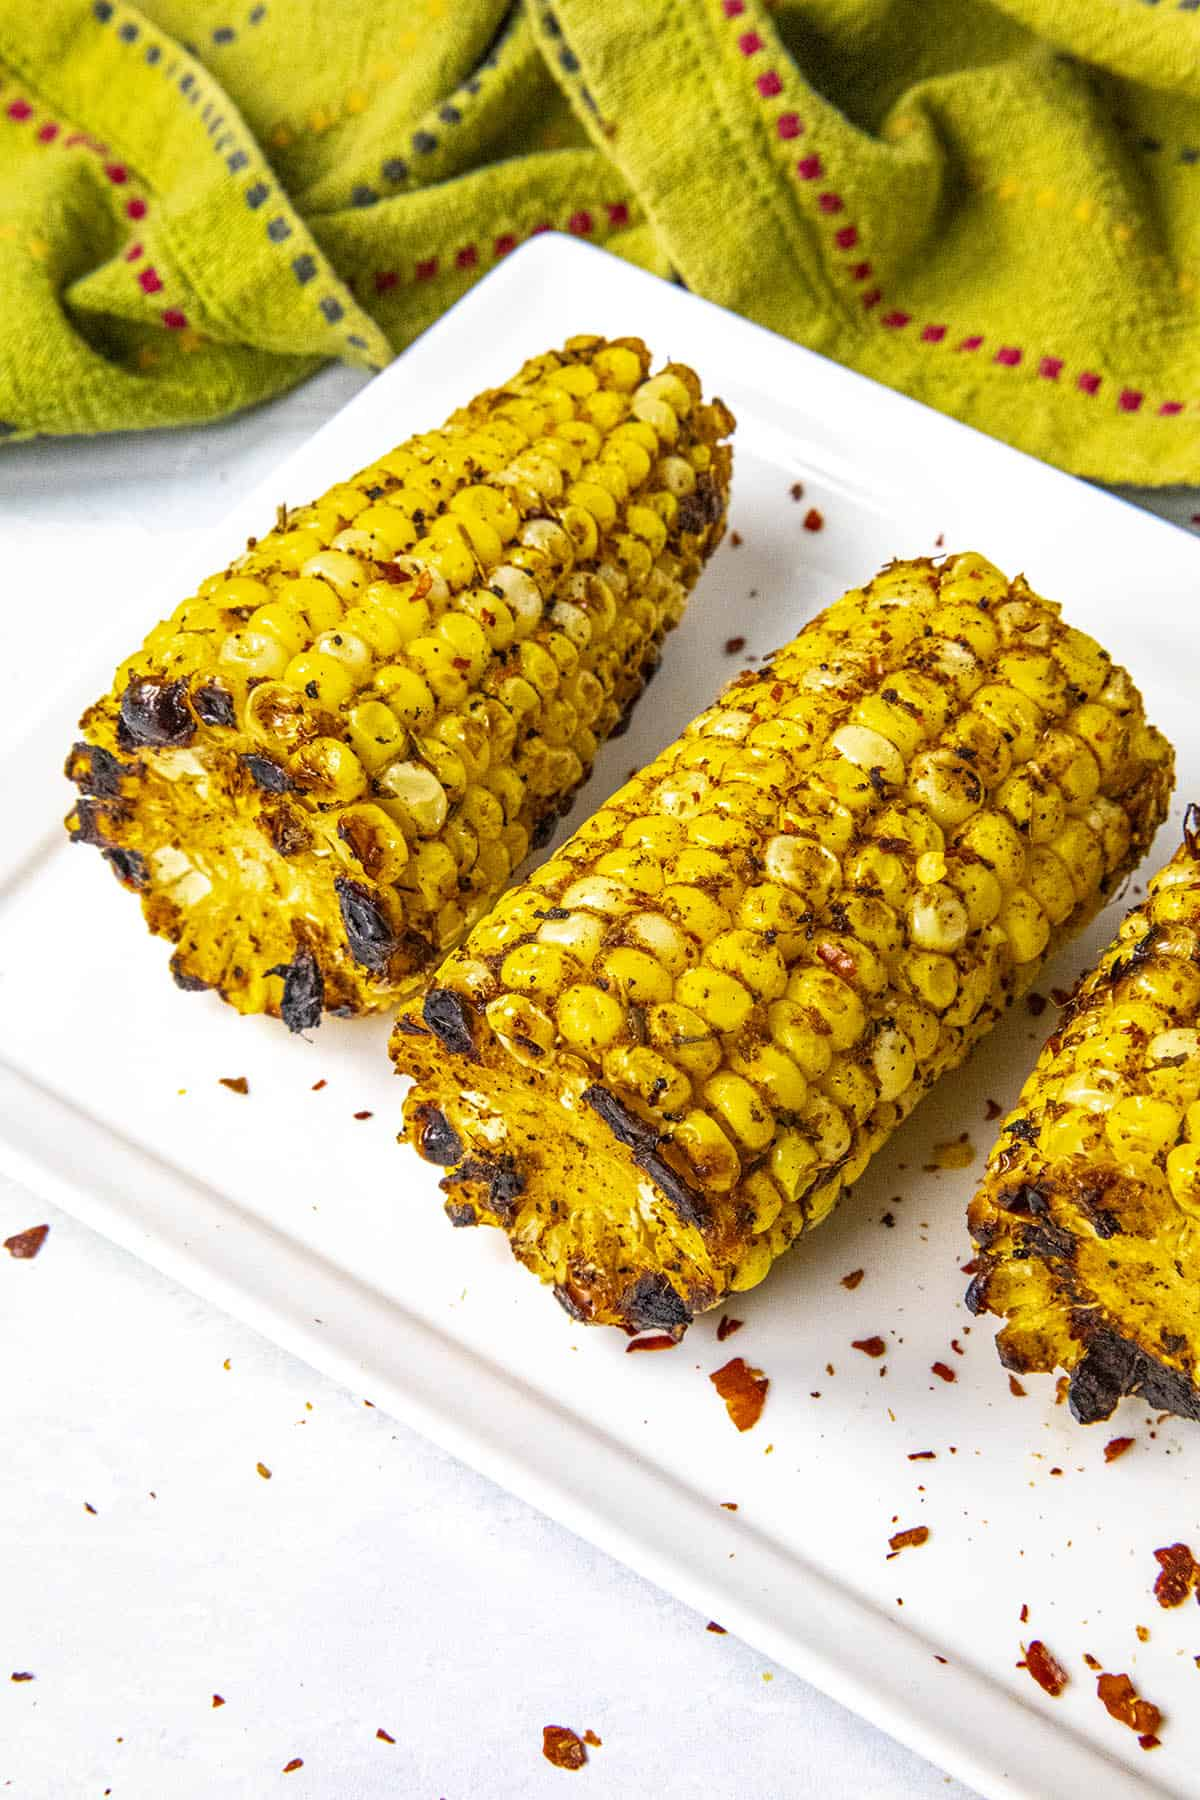 Sliced grilled corn on the cob with lots of seasonings